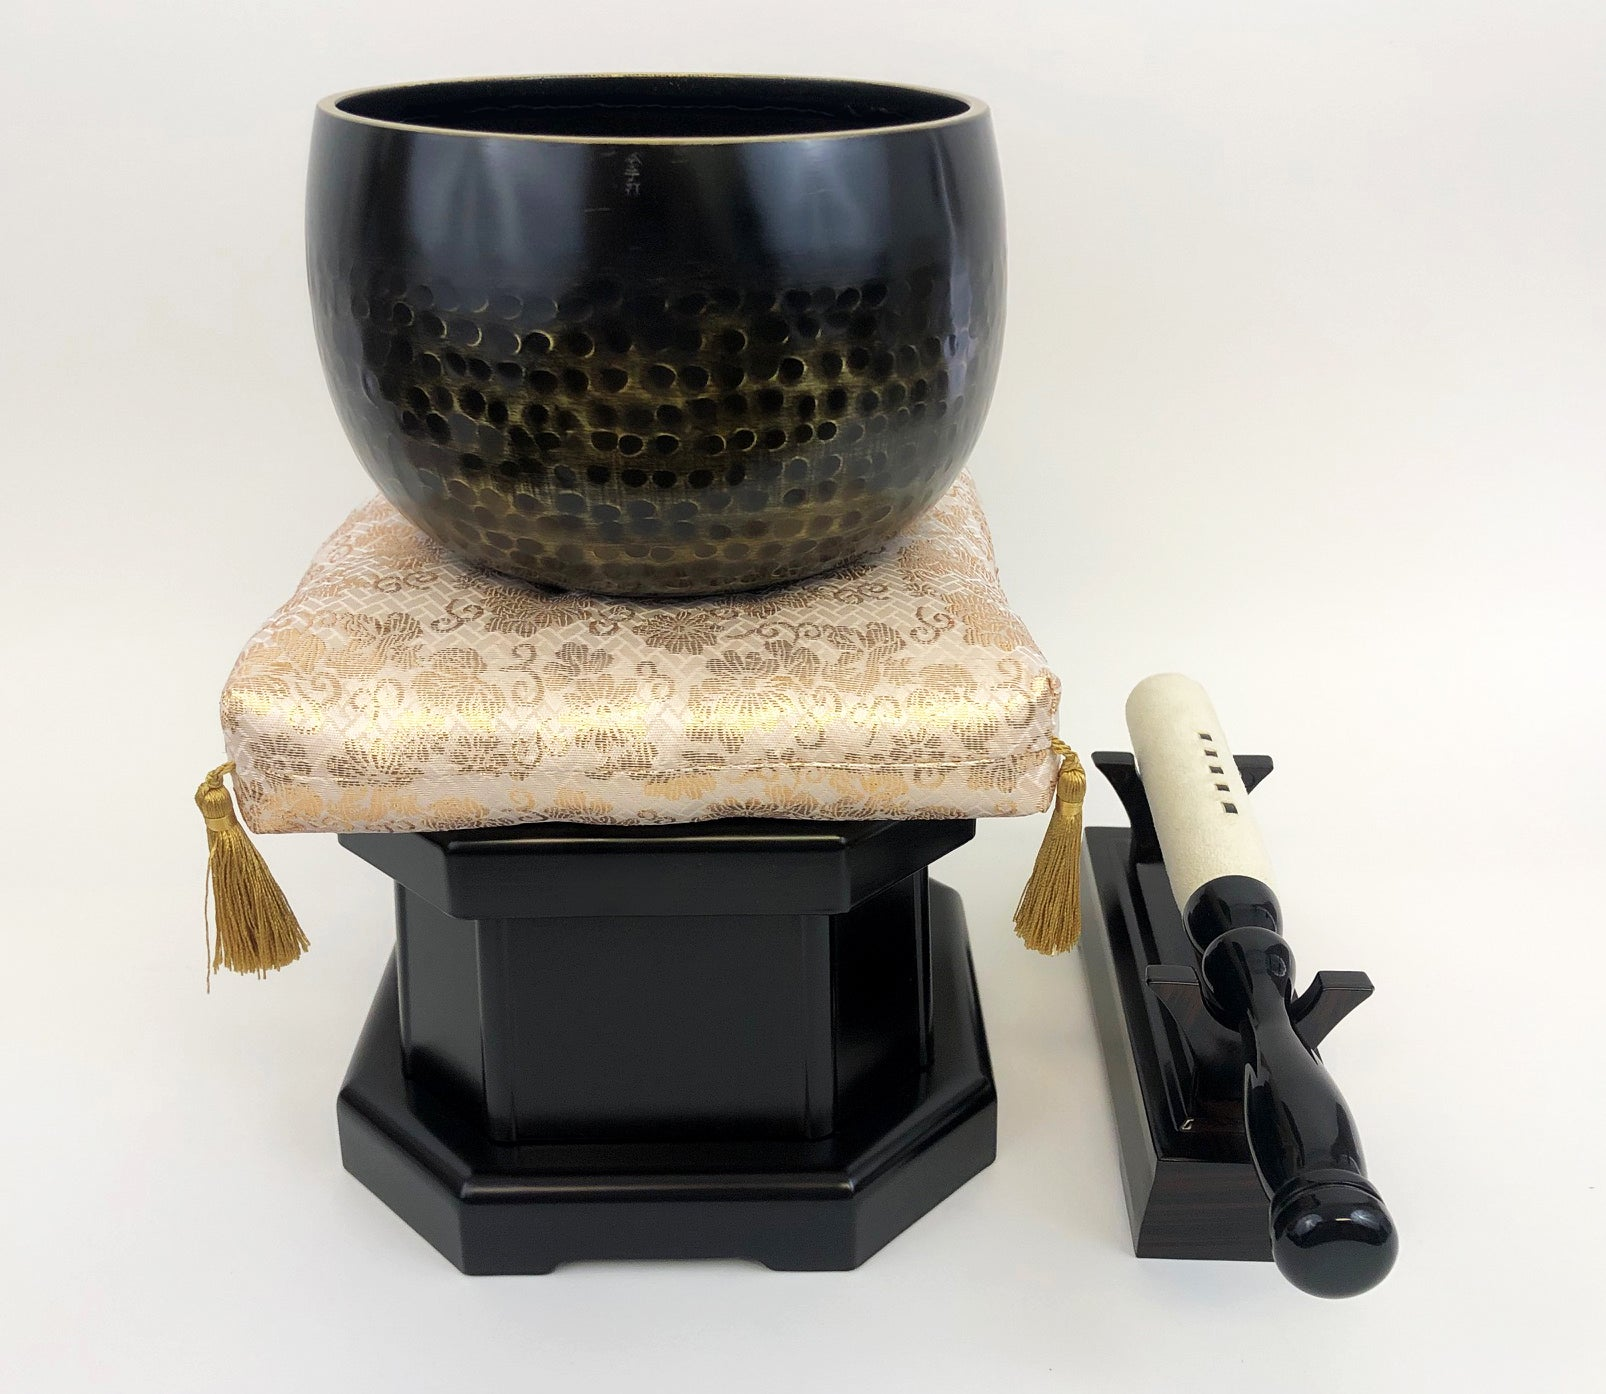 "No. 6 Bell (7.75"" Diameter) with Gold Floral Cushion and Ebony Base"